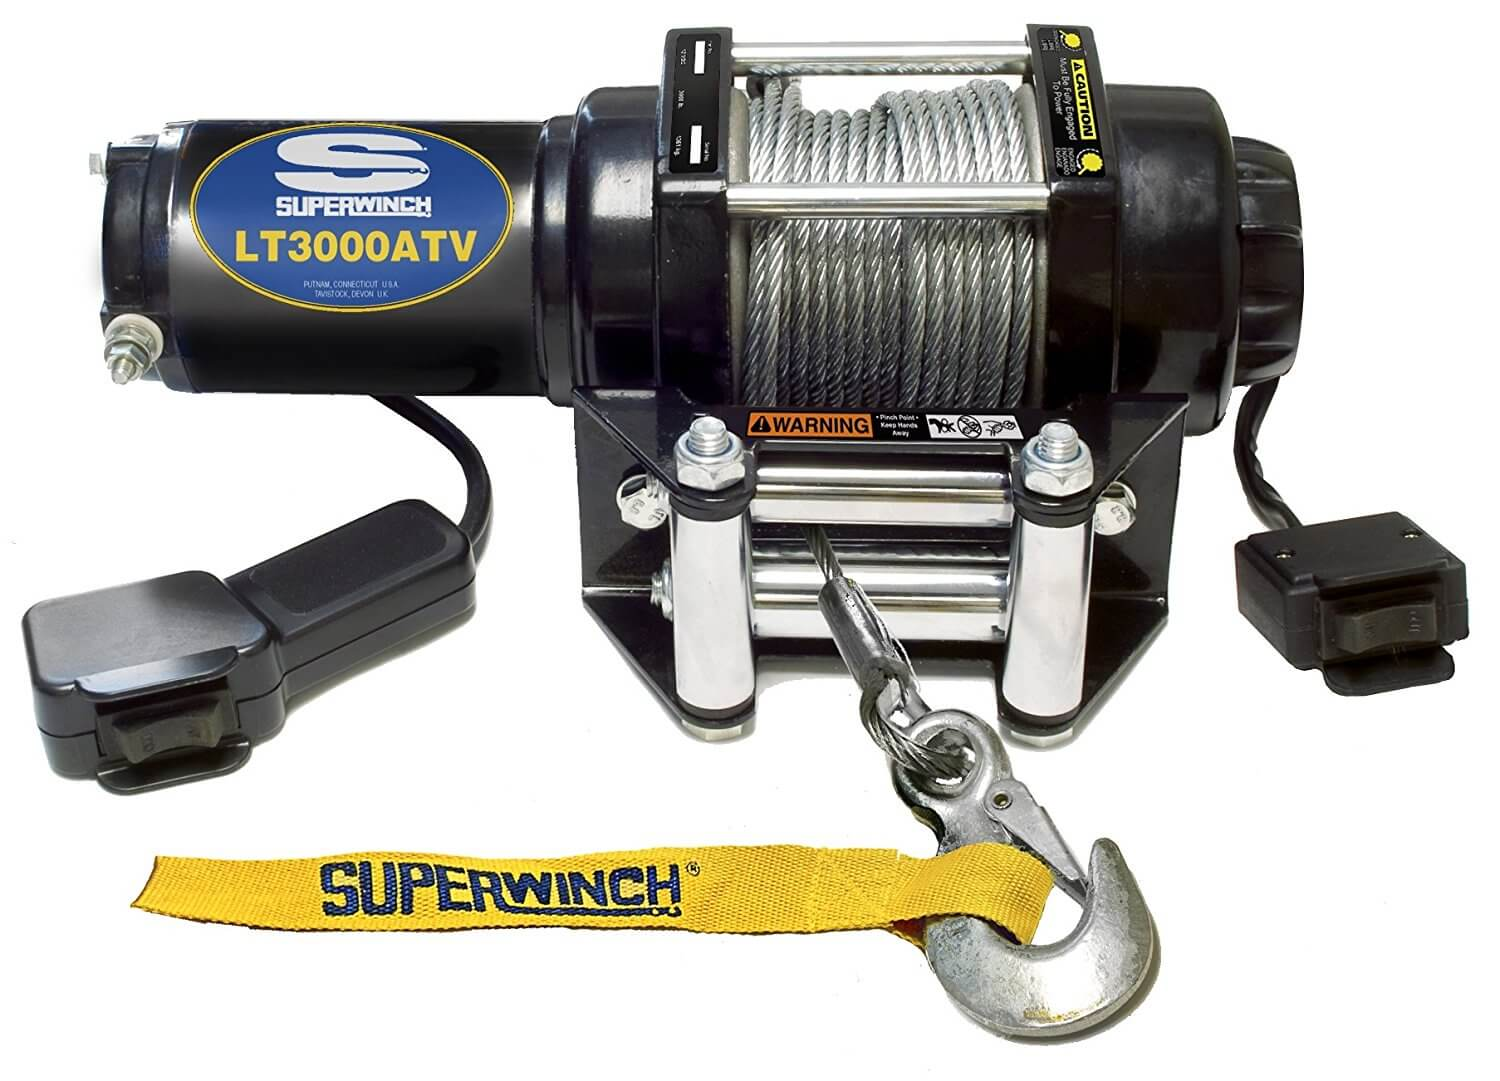 Superwinch 1130220 LT3000ATV 12 VDC winch